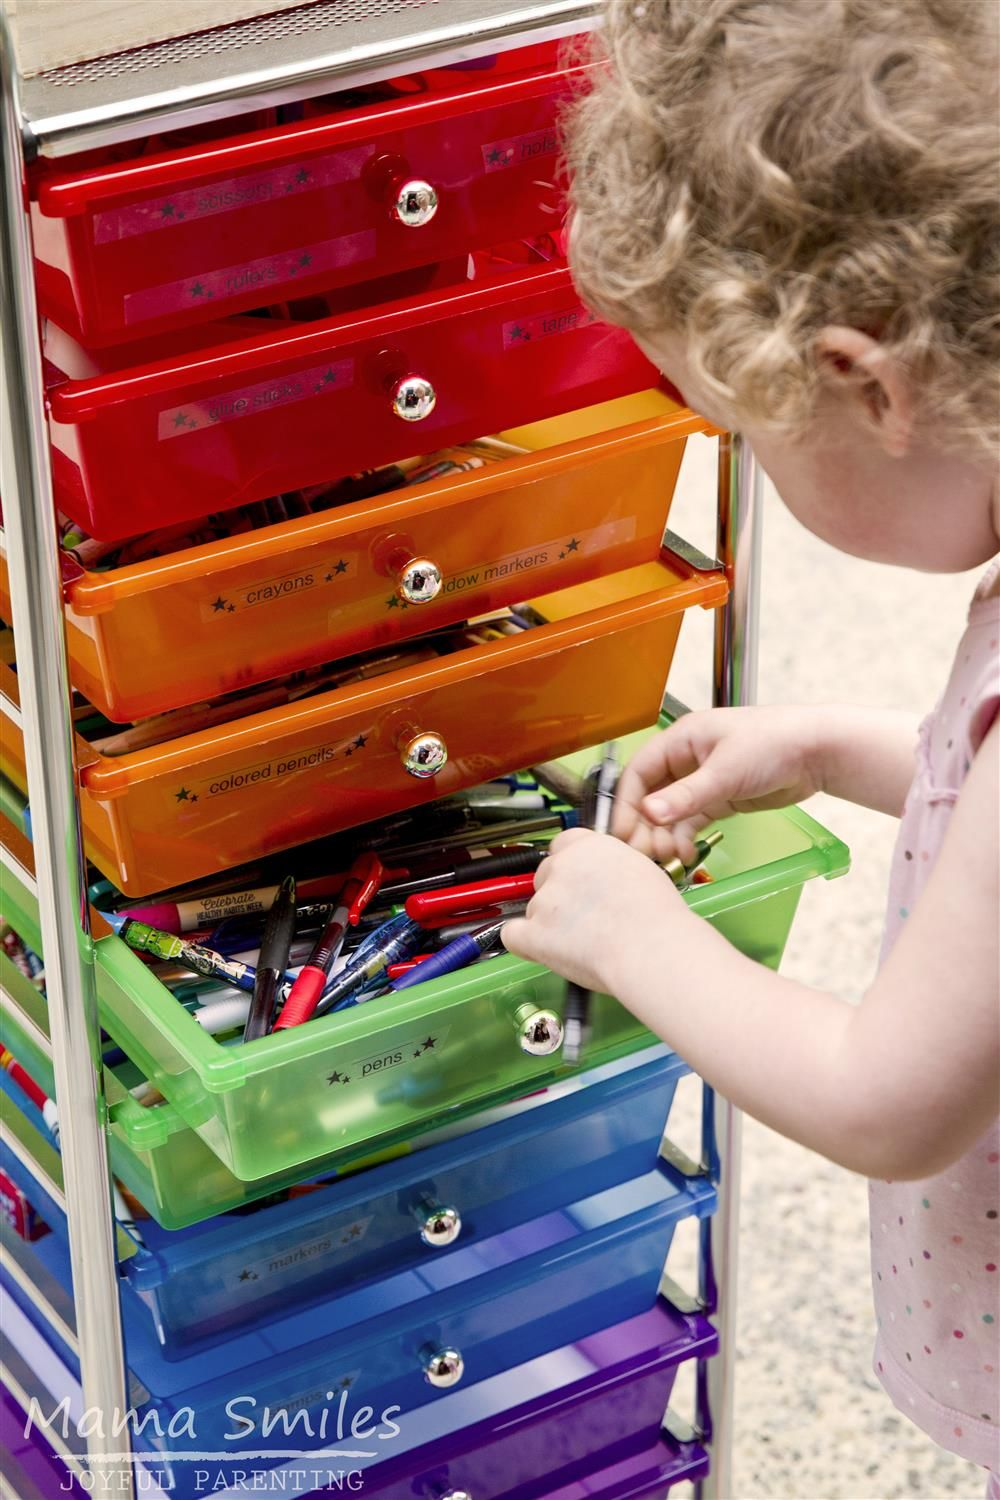 How To Store Craft Supplies For Kids Kids Craft Storage Kids Craft Supplies Kids Storage